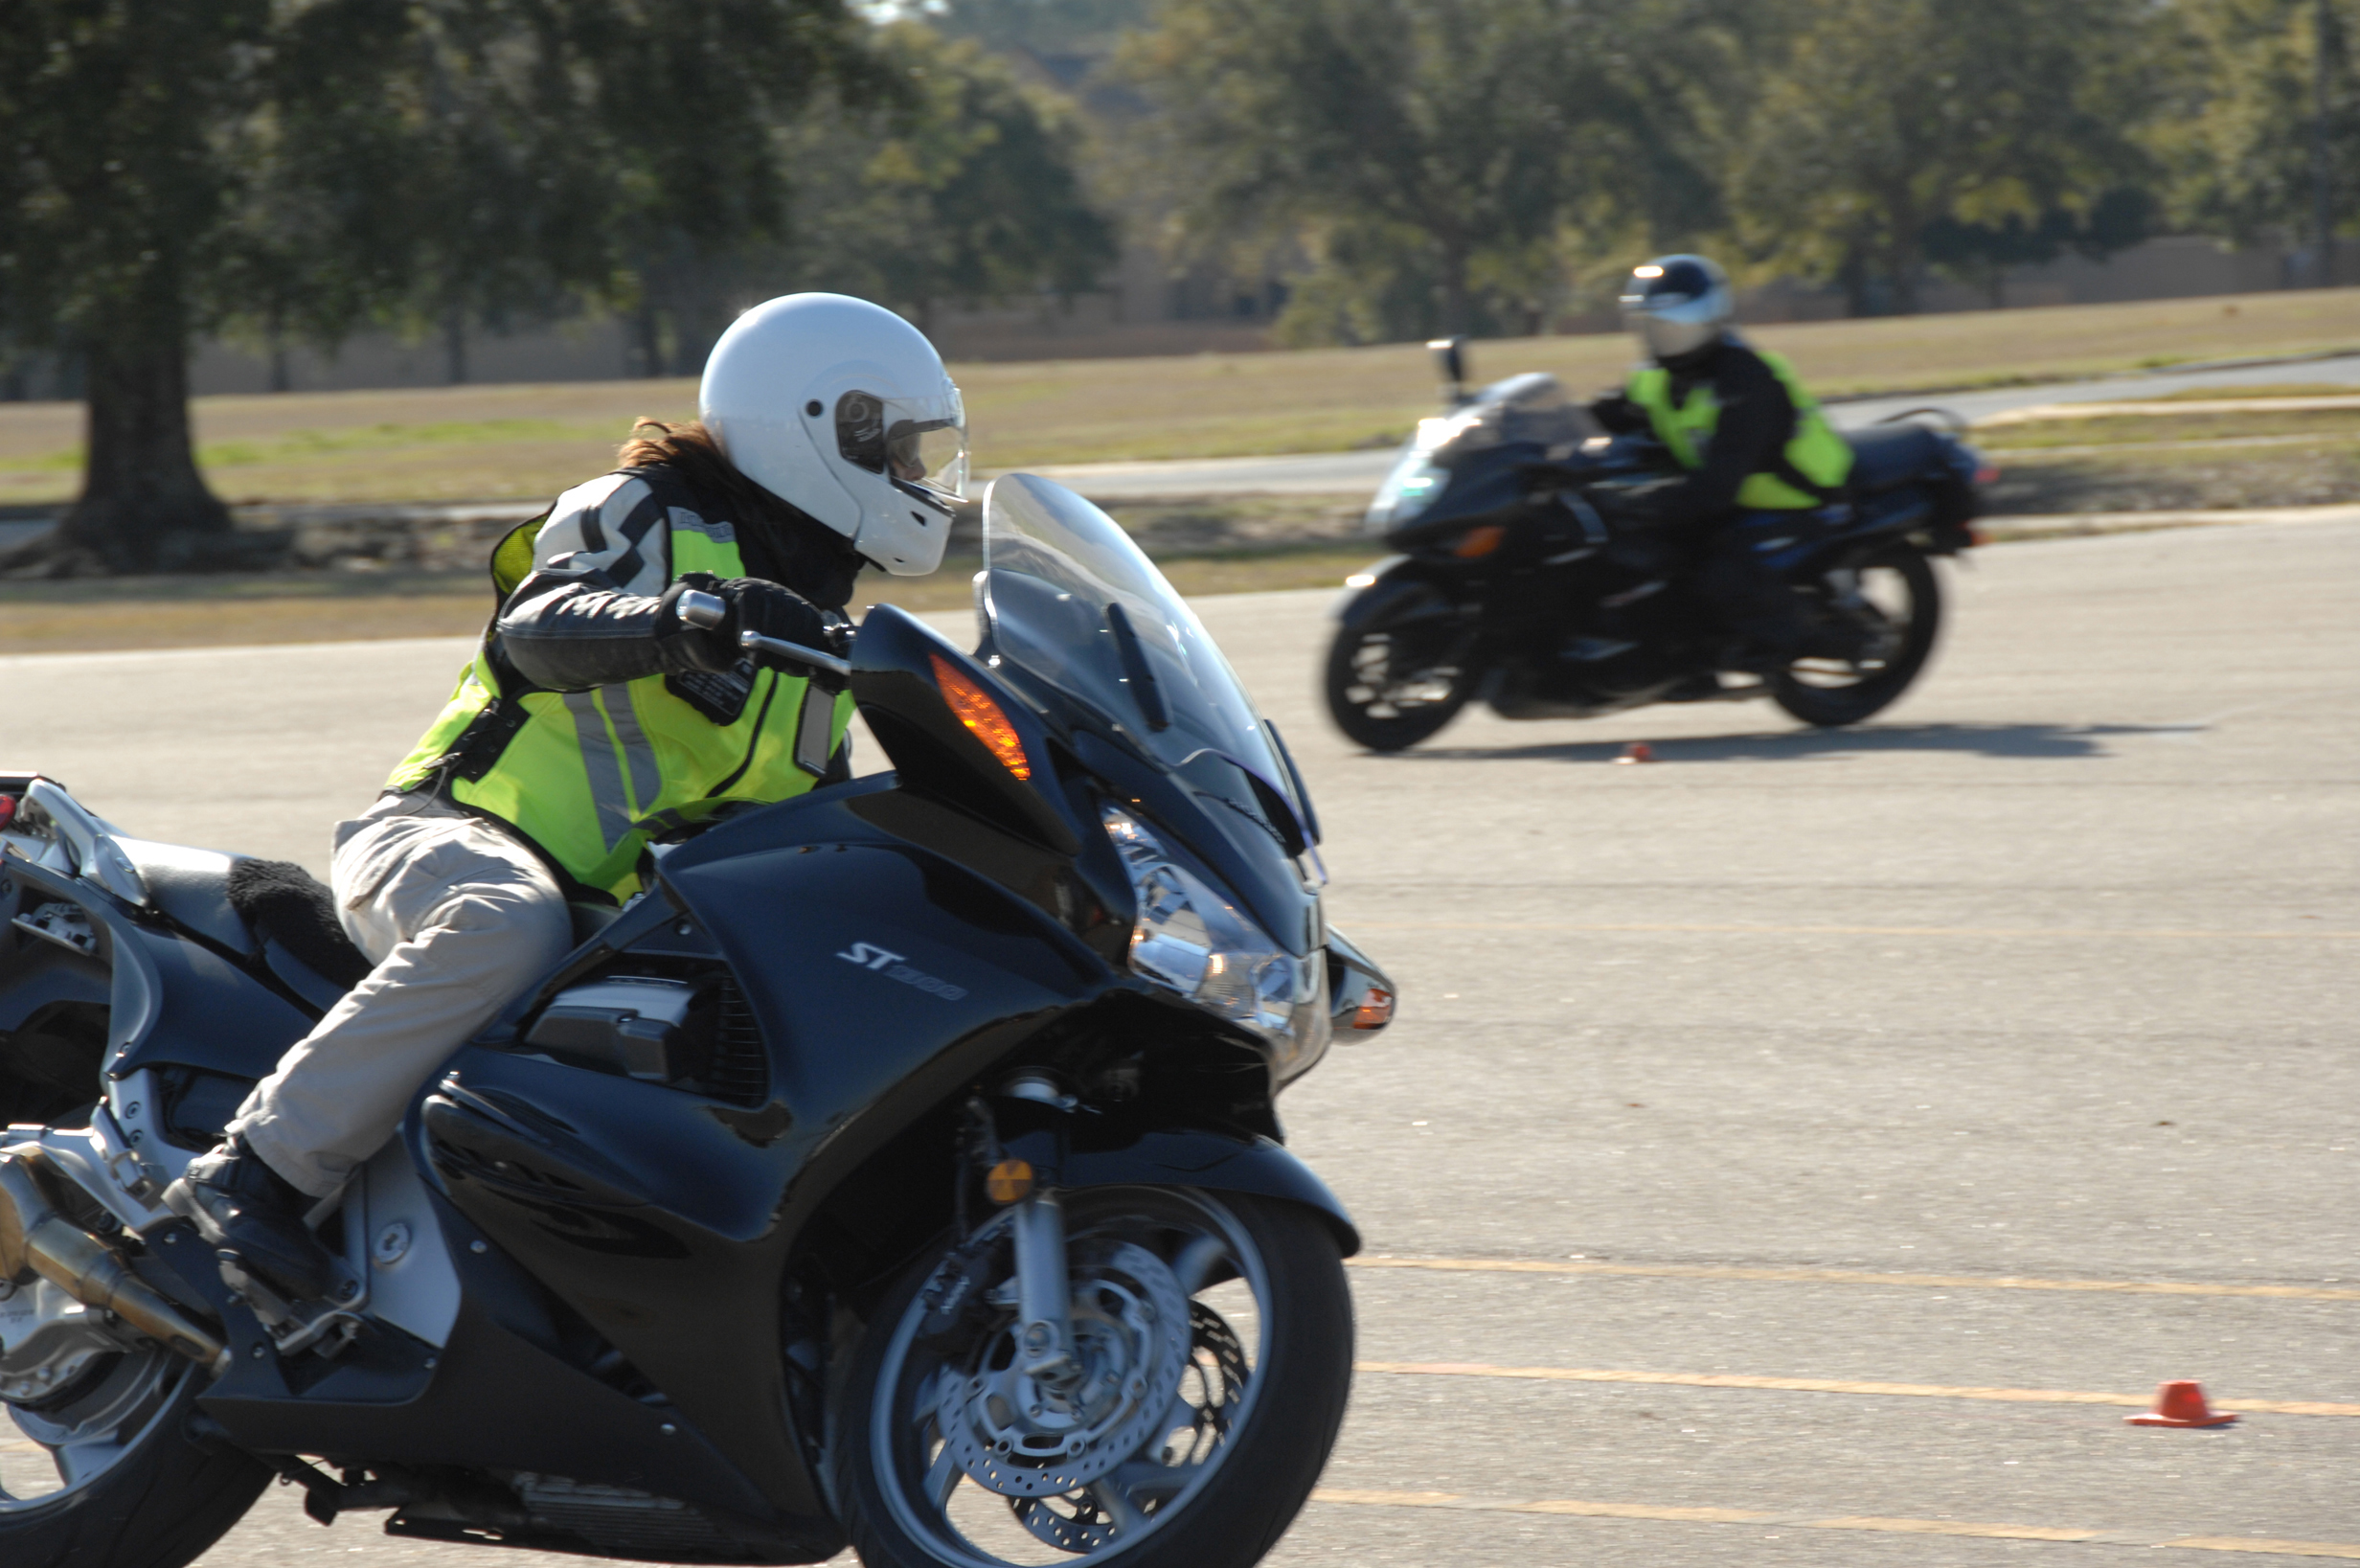 Bikes Used At Msf Course hosted Motorcycle Safety